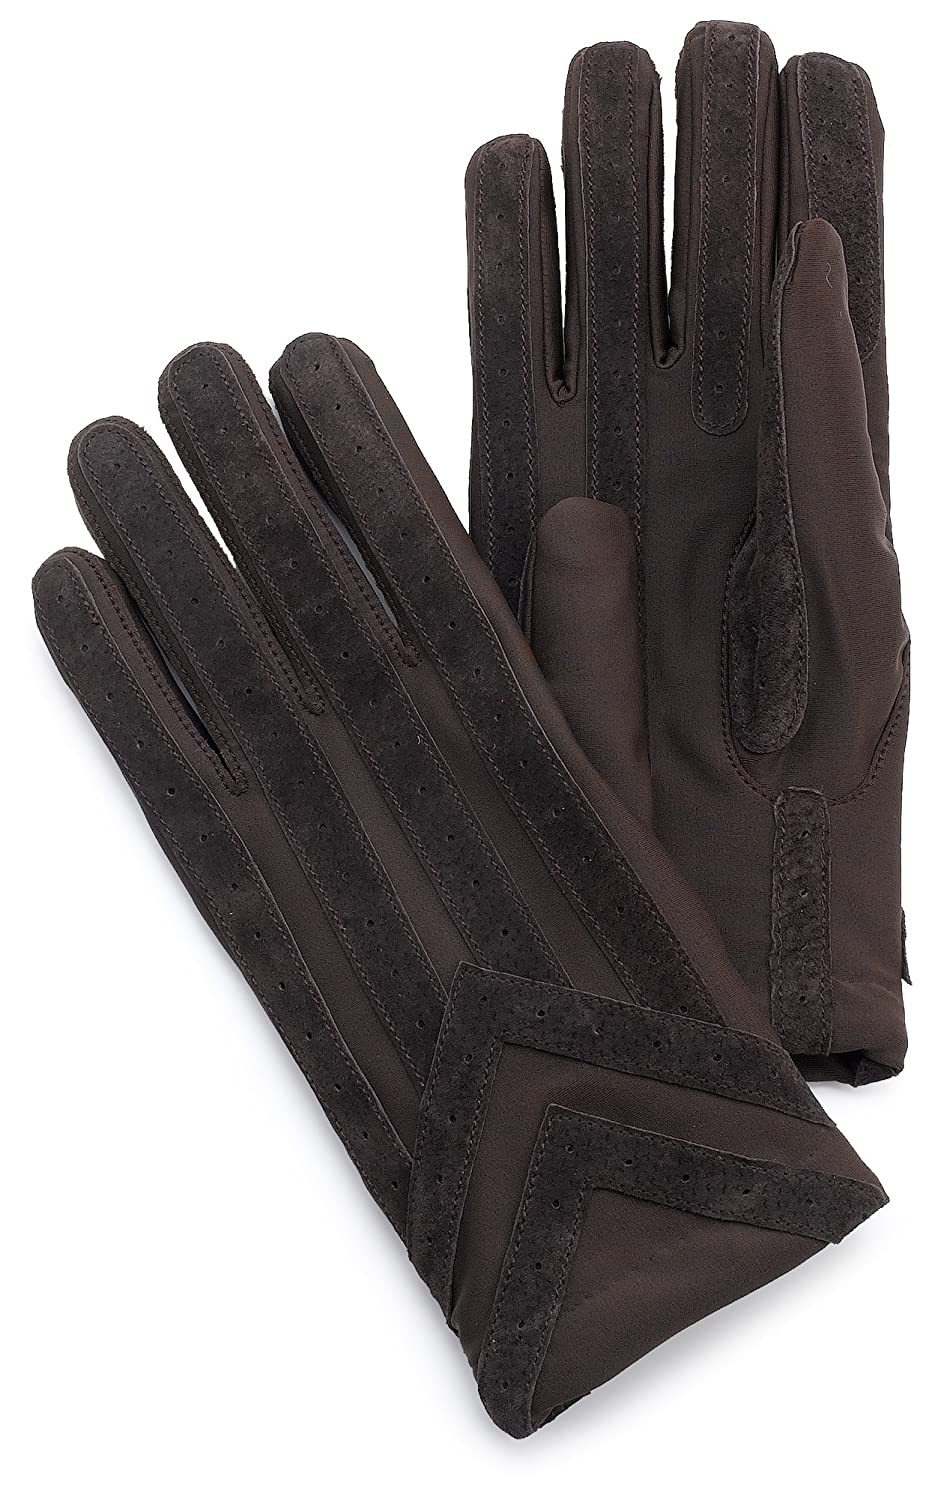 Isotoner womens leather gloves with fleece lining - Isotoner Men S Spandex Glove With Suede Palm Strips Brown Medium Large At Amazon Men S Clothing Store Cold Weather Gloves